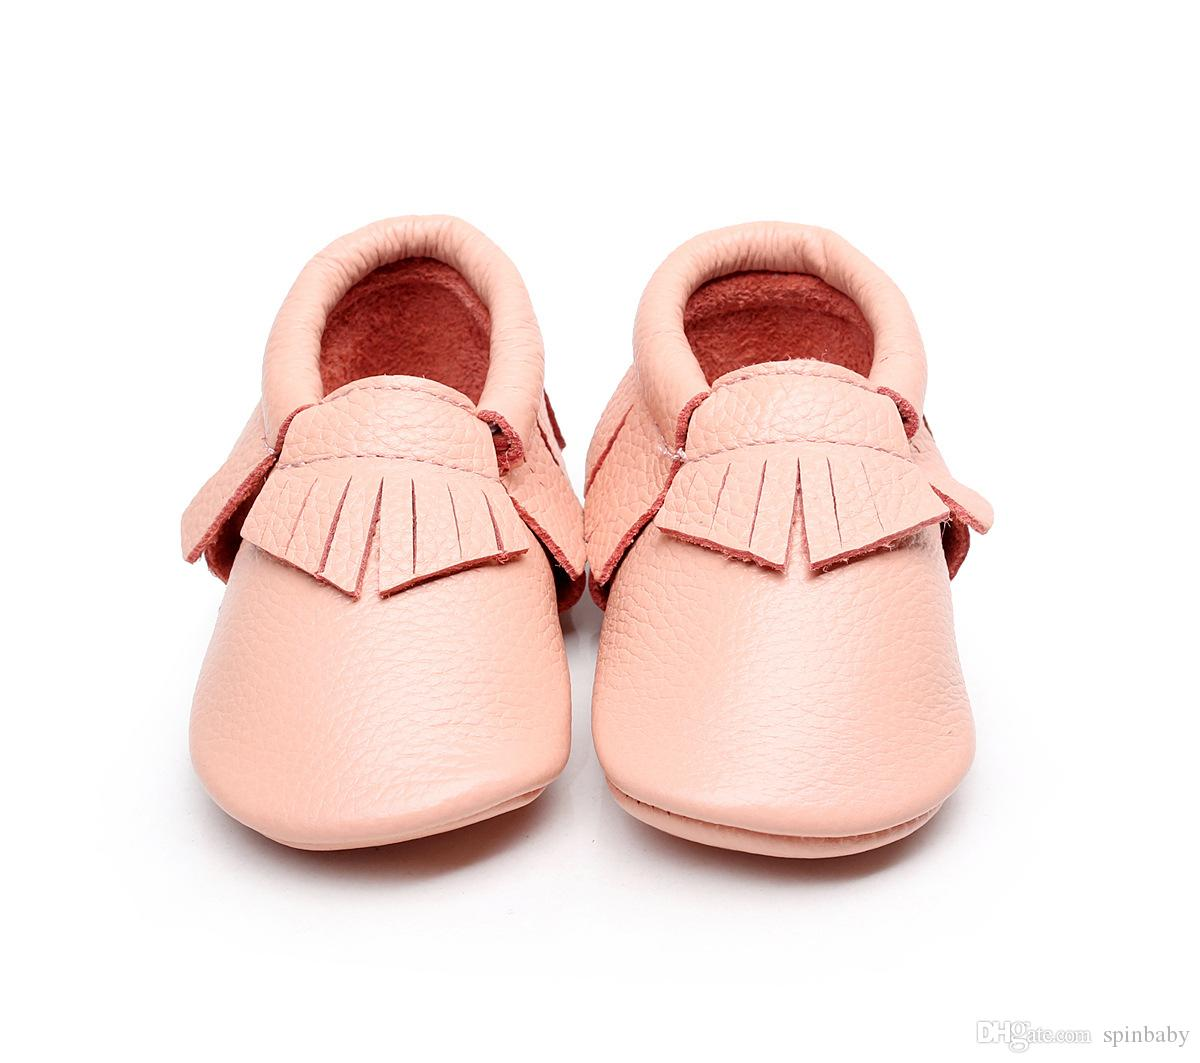 2016 Newest girls bows moccs Baby moccasins soft sole moccs genuine leather prewalker booties toddlers infants fringe bow cow leather shoes